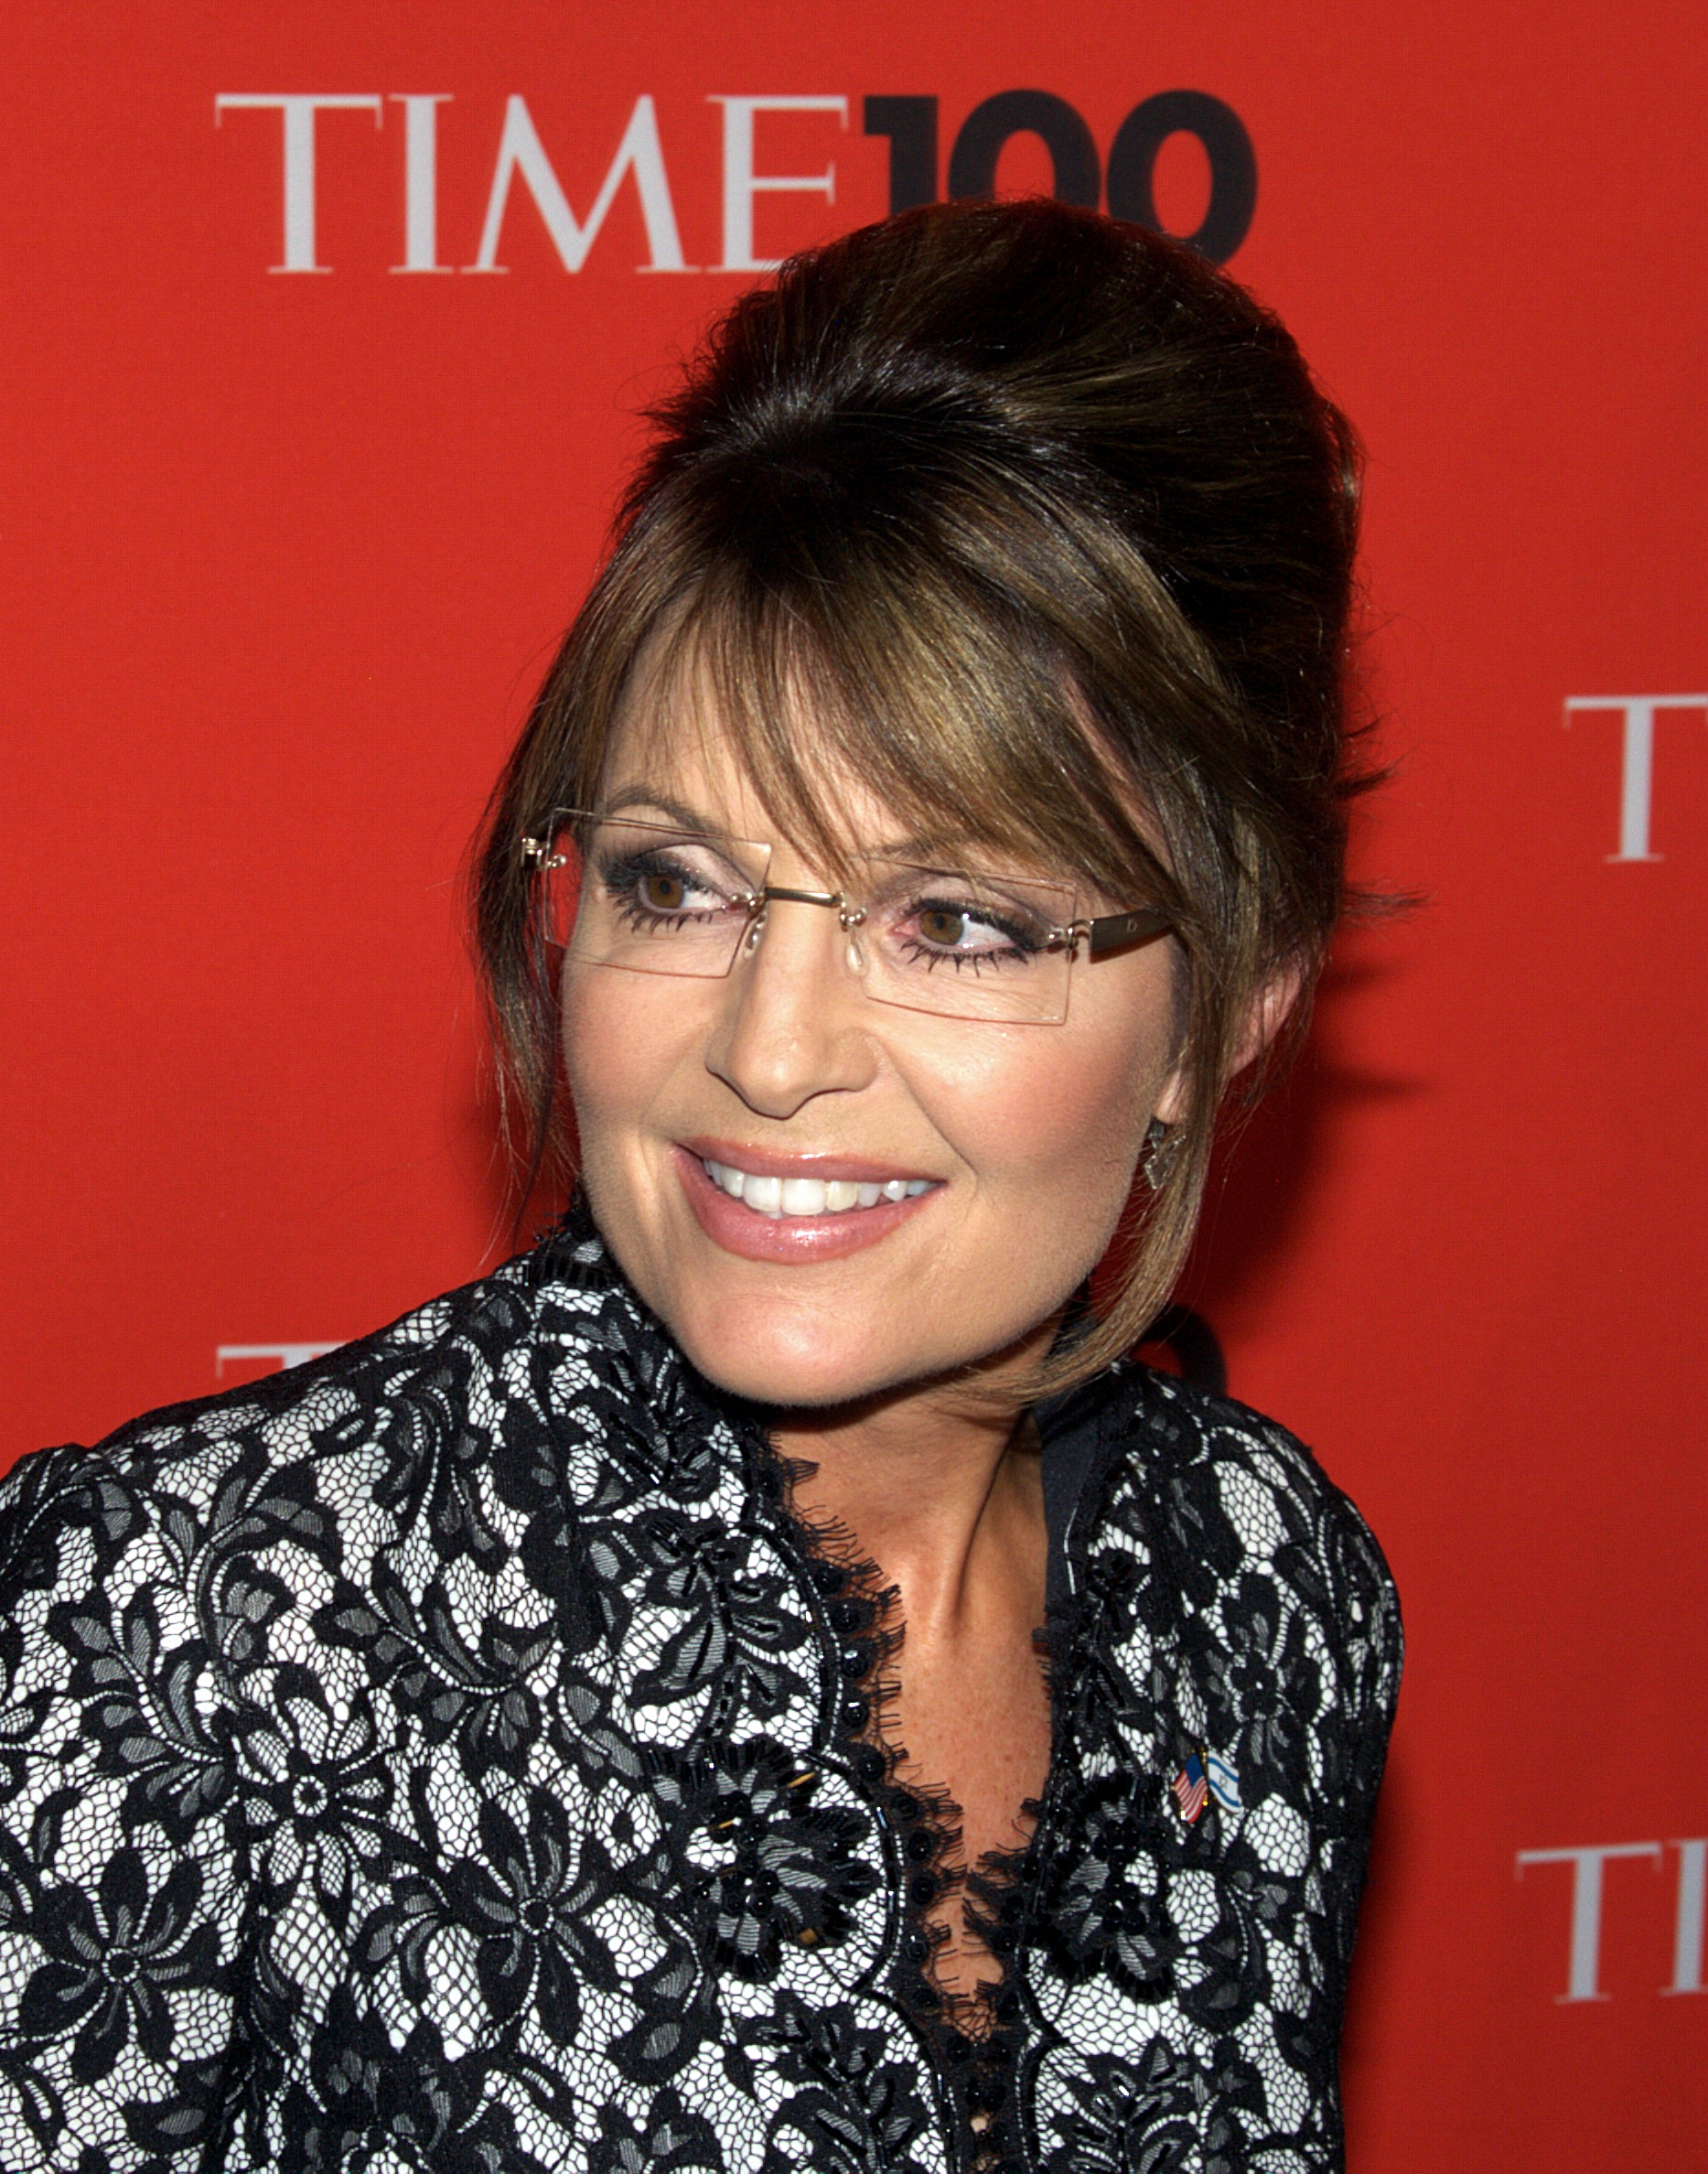 Sarah Palin earned a  million dollar salary, leaving the net worth at 12 million in 2017